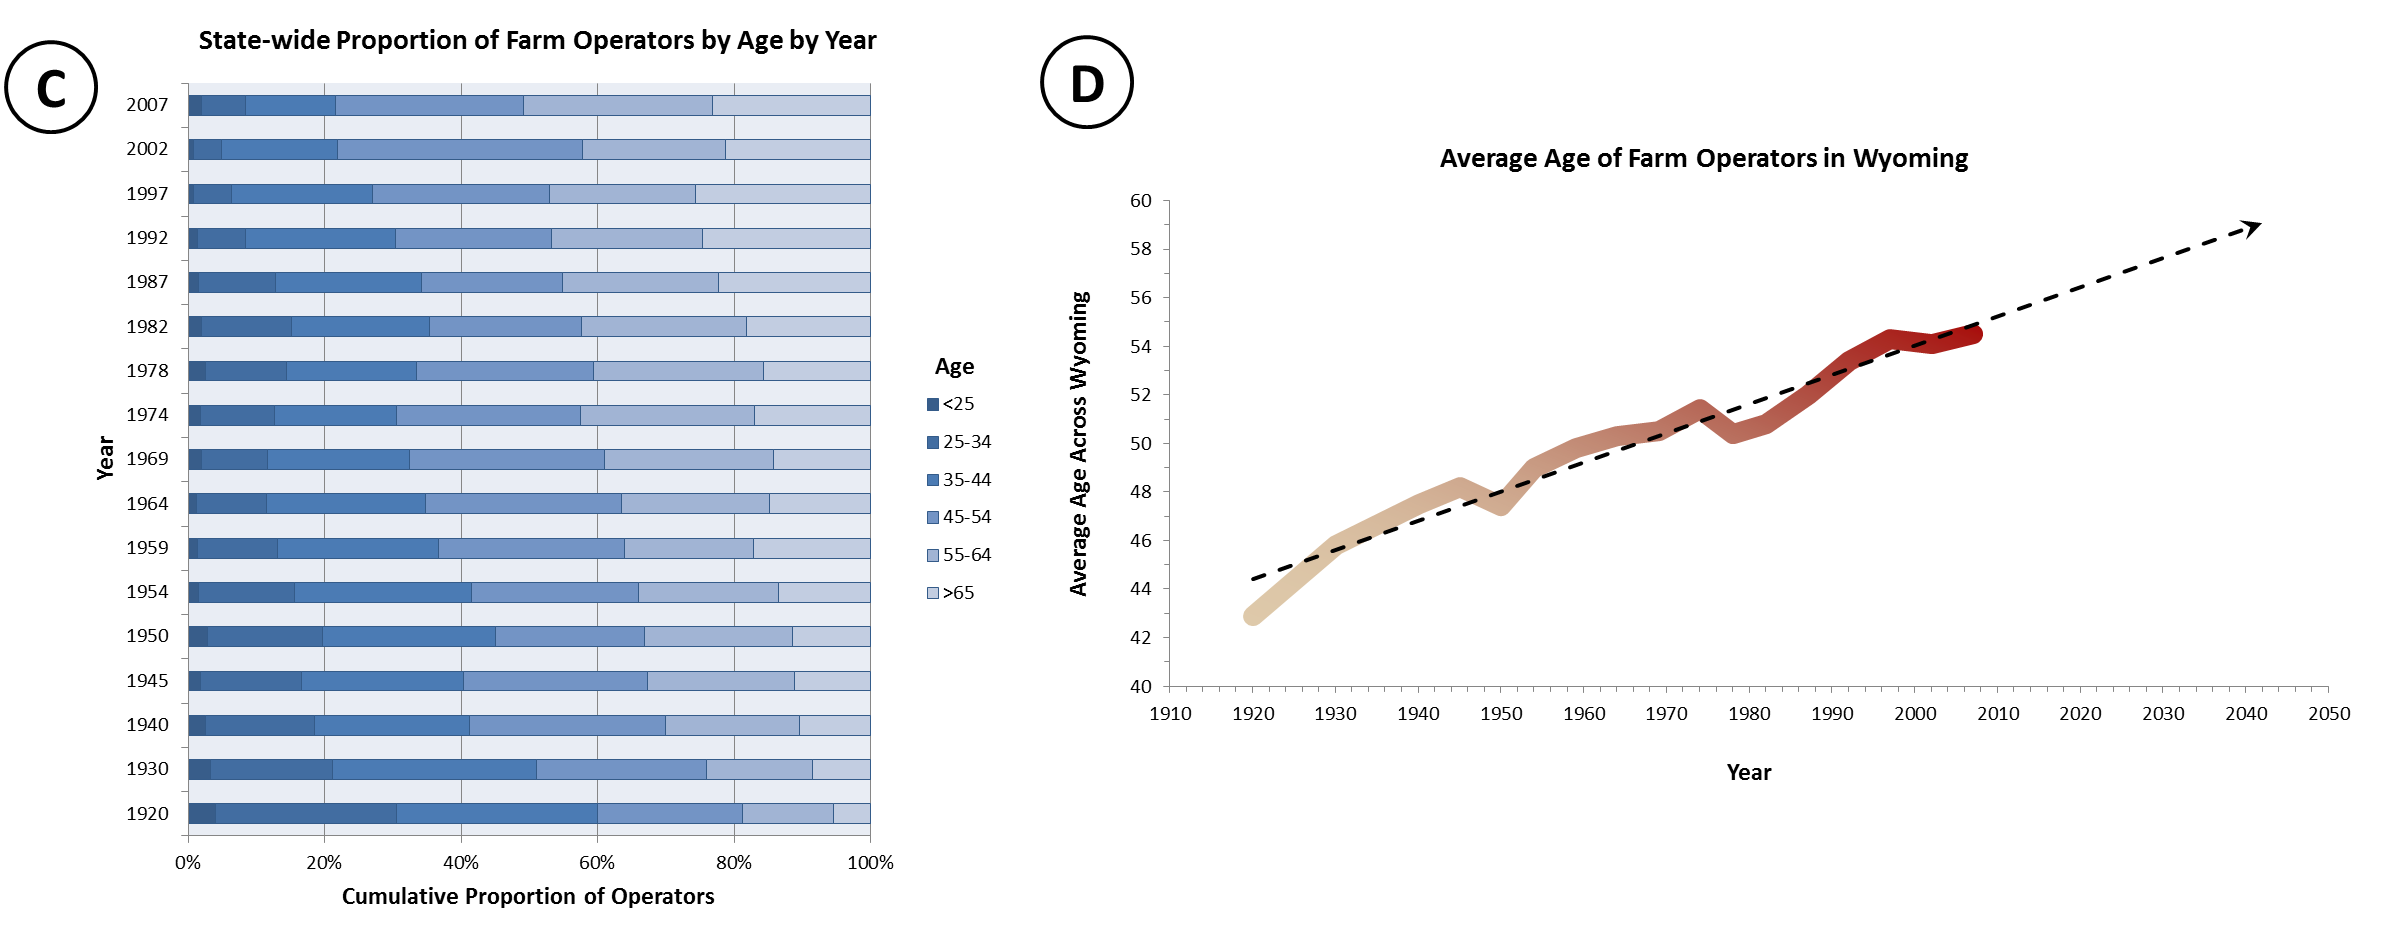 Figure C mimics the information in Figure A, but allows for easy comparison across years. Figure D summarizes all state-wide age statistics, highlighting the rapid increase in age that has come over time. Here, 95% of the variability in age can be explained by time, allowing us to predict into the future with moderate confidence. The average age is increasing at a rate of about a 1.5 months (~44 days) per year, and by 2050 we predict a 35% increase in age over operators from 1920.